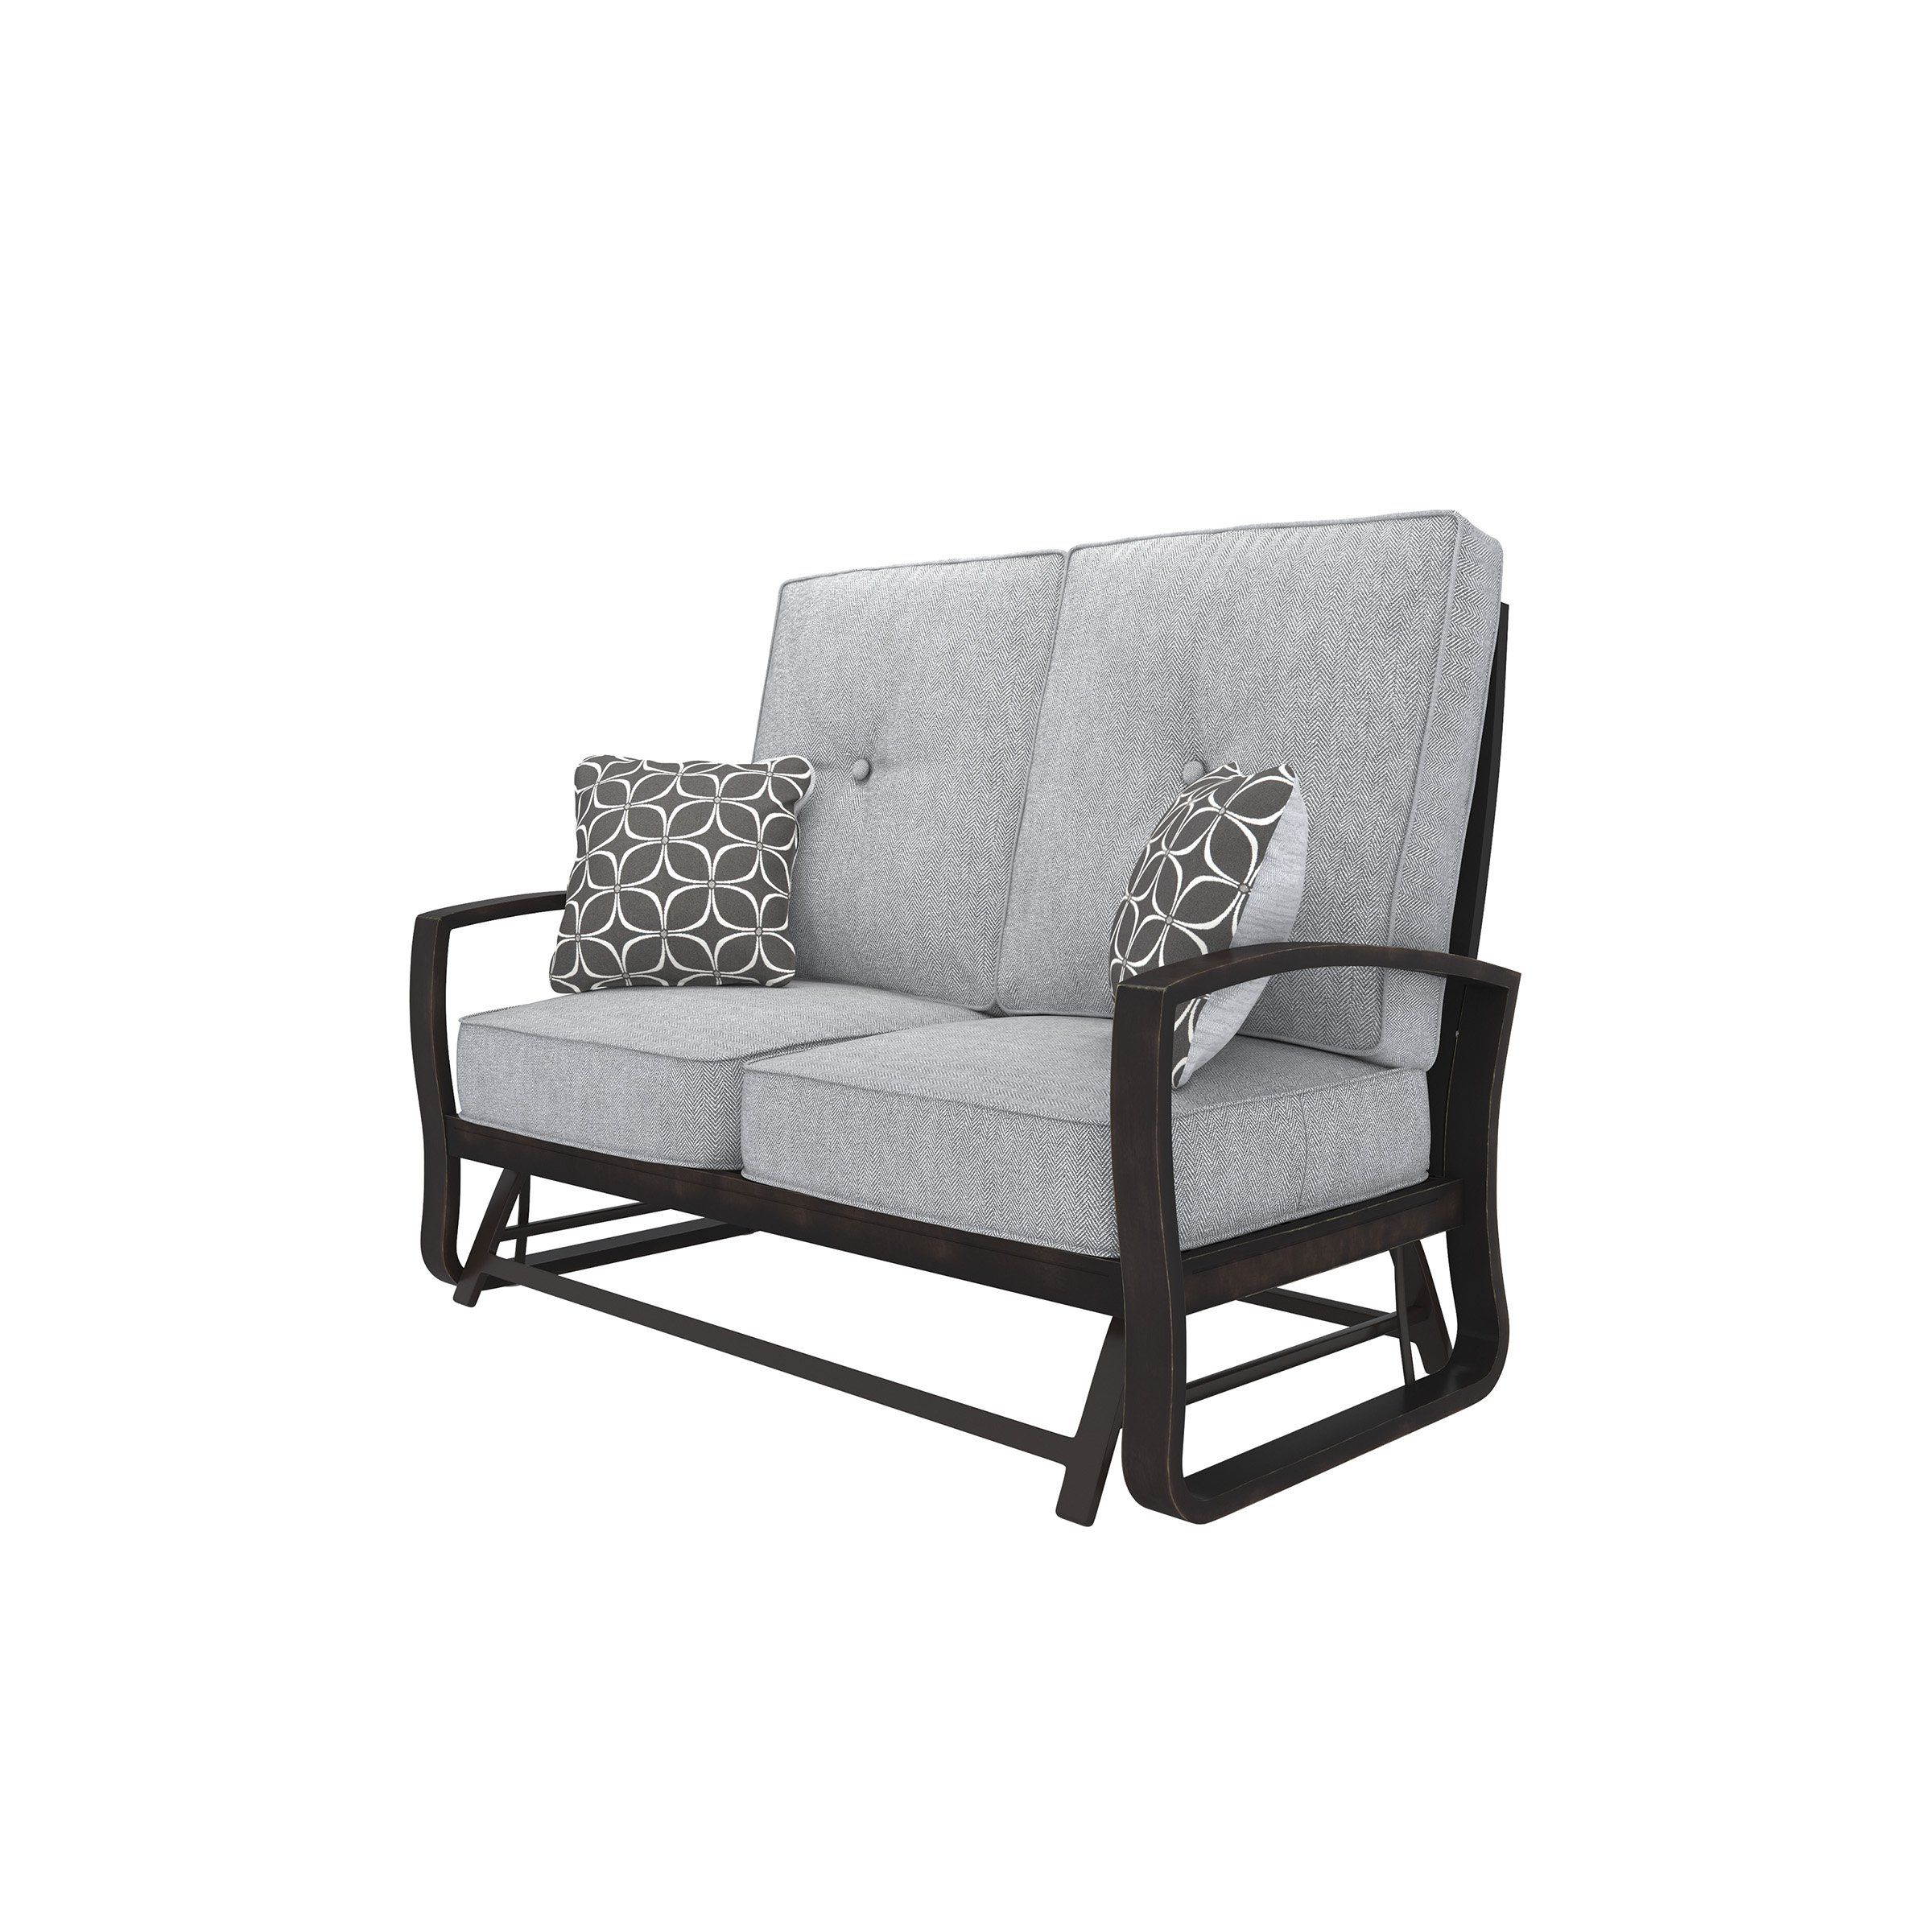 Fashionable Outdoor Loveseat Gliders With Cushion Regarding Signature Design P414 835 Castle Island Brown Gray Outdoor (Gallery 1 of 30)